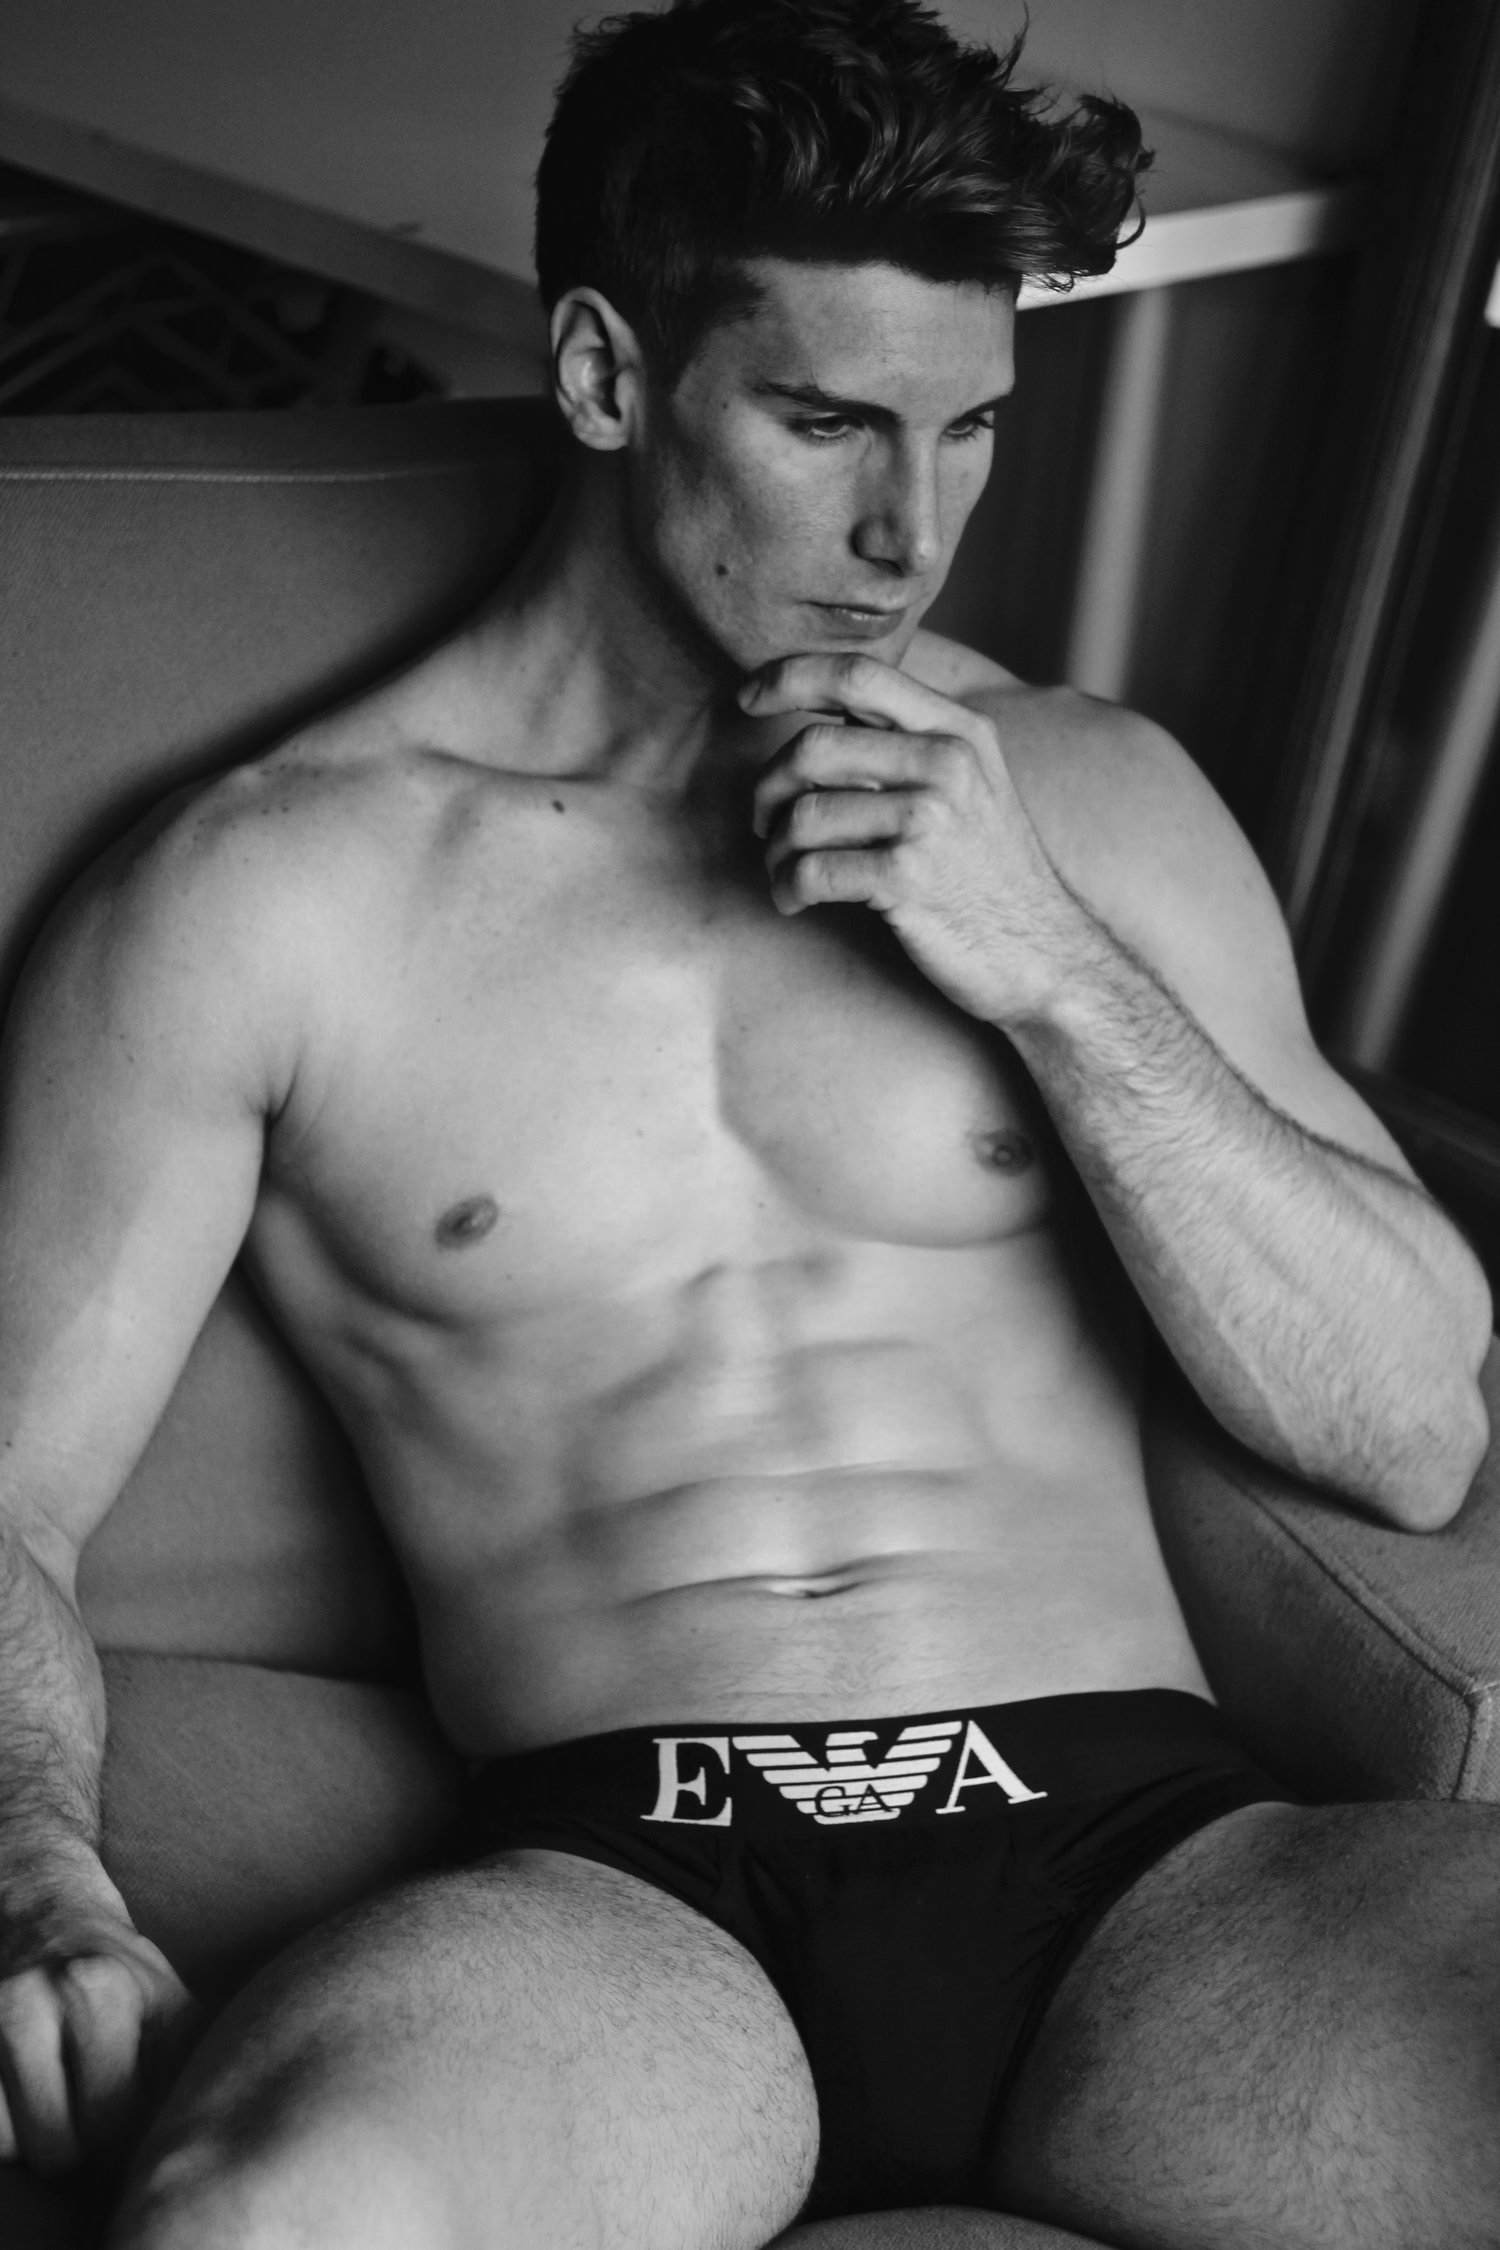 Adon Exclusive: Model Ross Cook By Gaston McGary